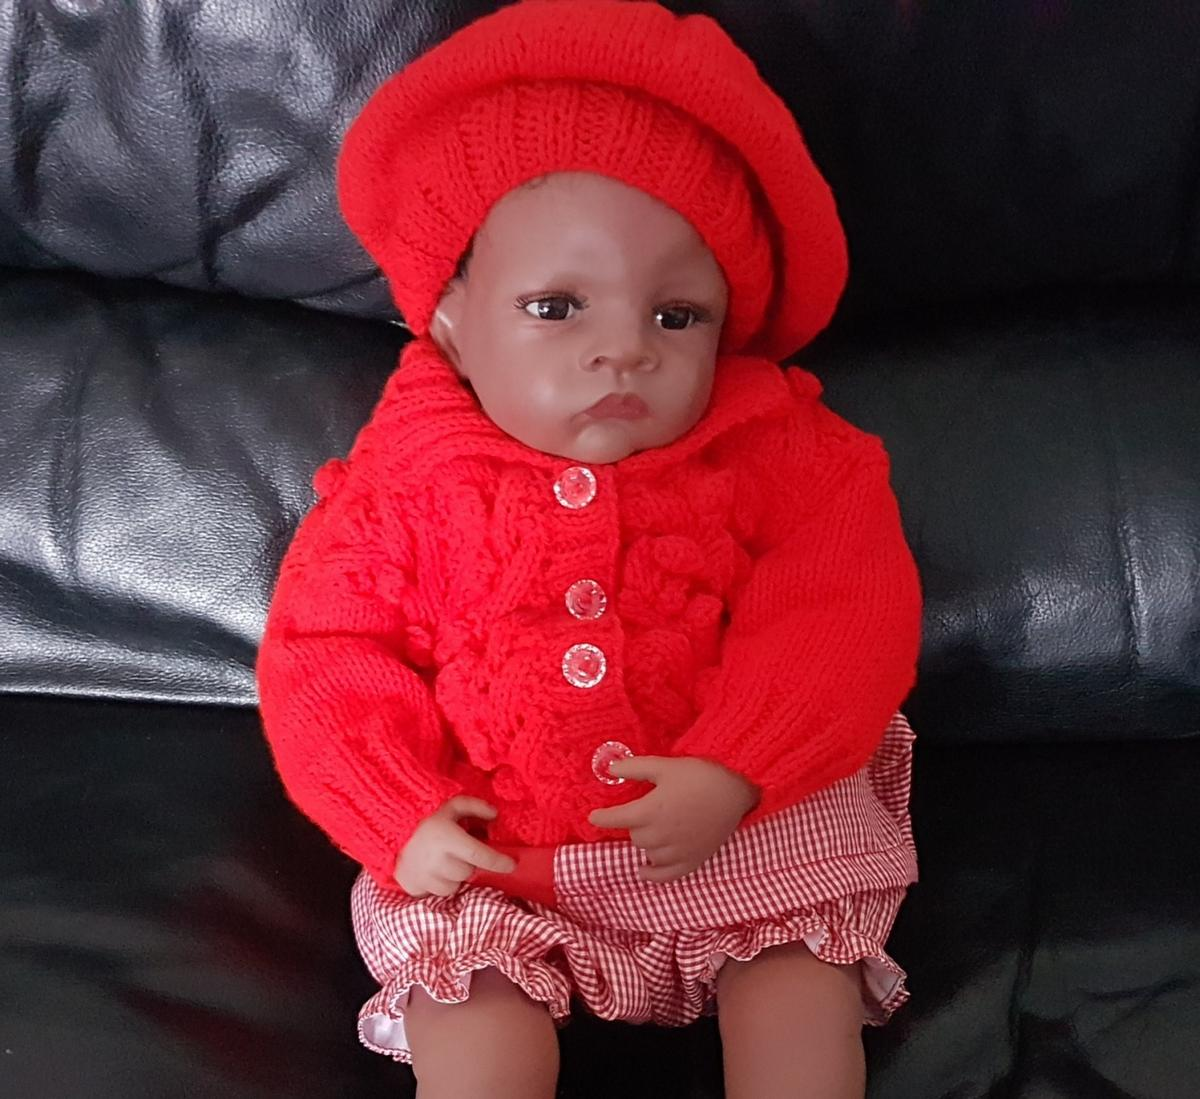 """ONLY BERET AT 4.50 Knitted in double knit .you can order as a set with bobble cardigan if wanted at £13.50 look at photos for coat.DOLL NOT INCLUDED CHECK OUT MY DESIGNS PLEASE ASK WHAT YOU ARE LOOKING FOR TO SEE IF I CAN HELP CHEST 20/22"""" LENGH 11"""" SLEEVE 7"""" NO TUMBLEDRY.THIS ITEM IS HAND KNITTED BY MYSELF IN A SMOKE AND PET FREE HOME.OPEN FOR CUSTOM BABY ORDERS MAY BE A WAITING LIST DEPENDING ON MY ÒRDERS AT THE TIME SO ORDER EARLY.POSTAGE WILL BE EXTRA COST PREFER COLLECTION"""